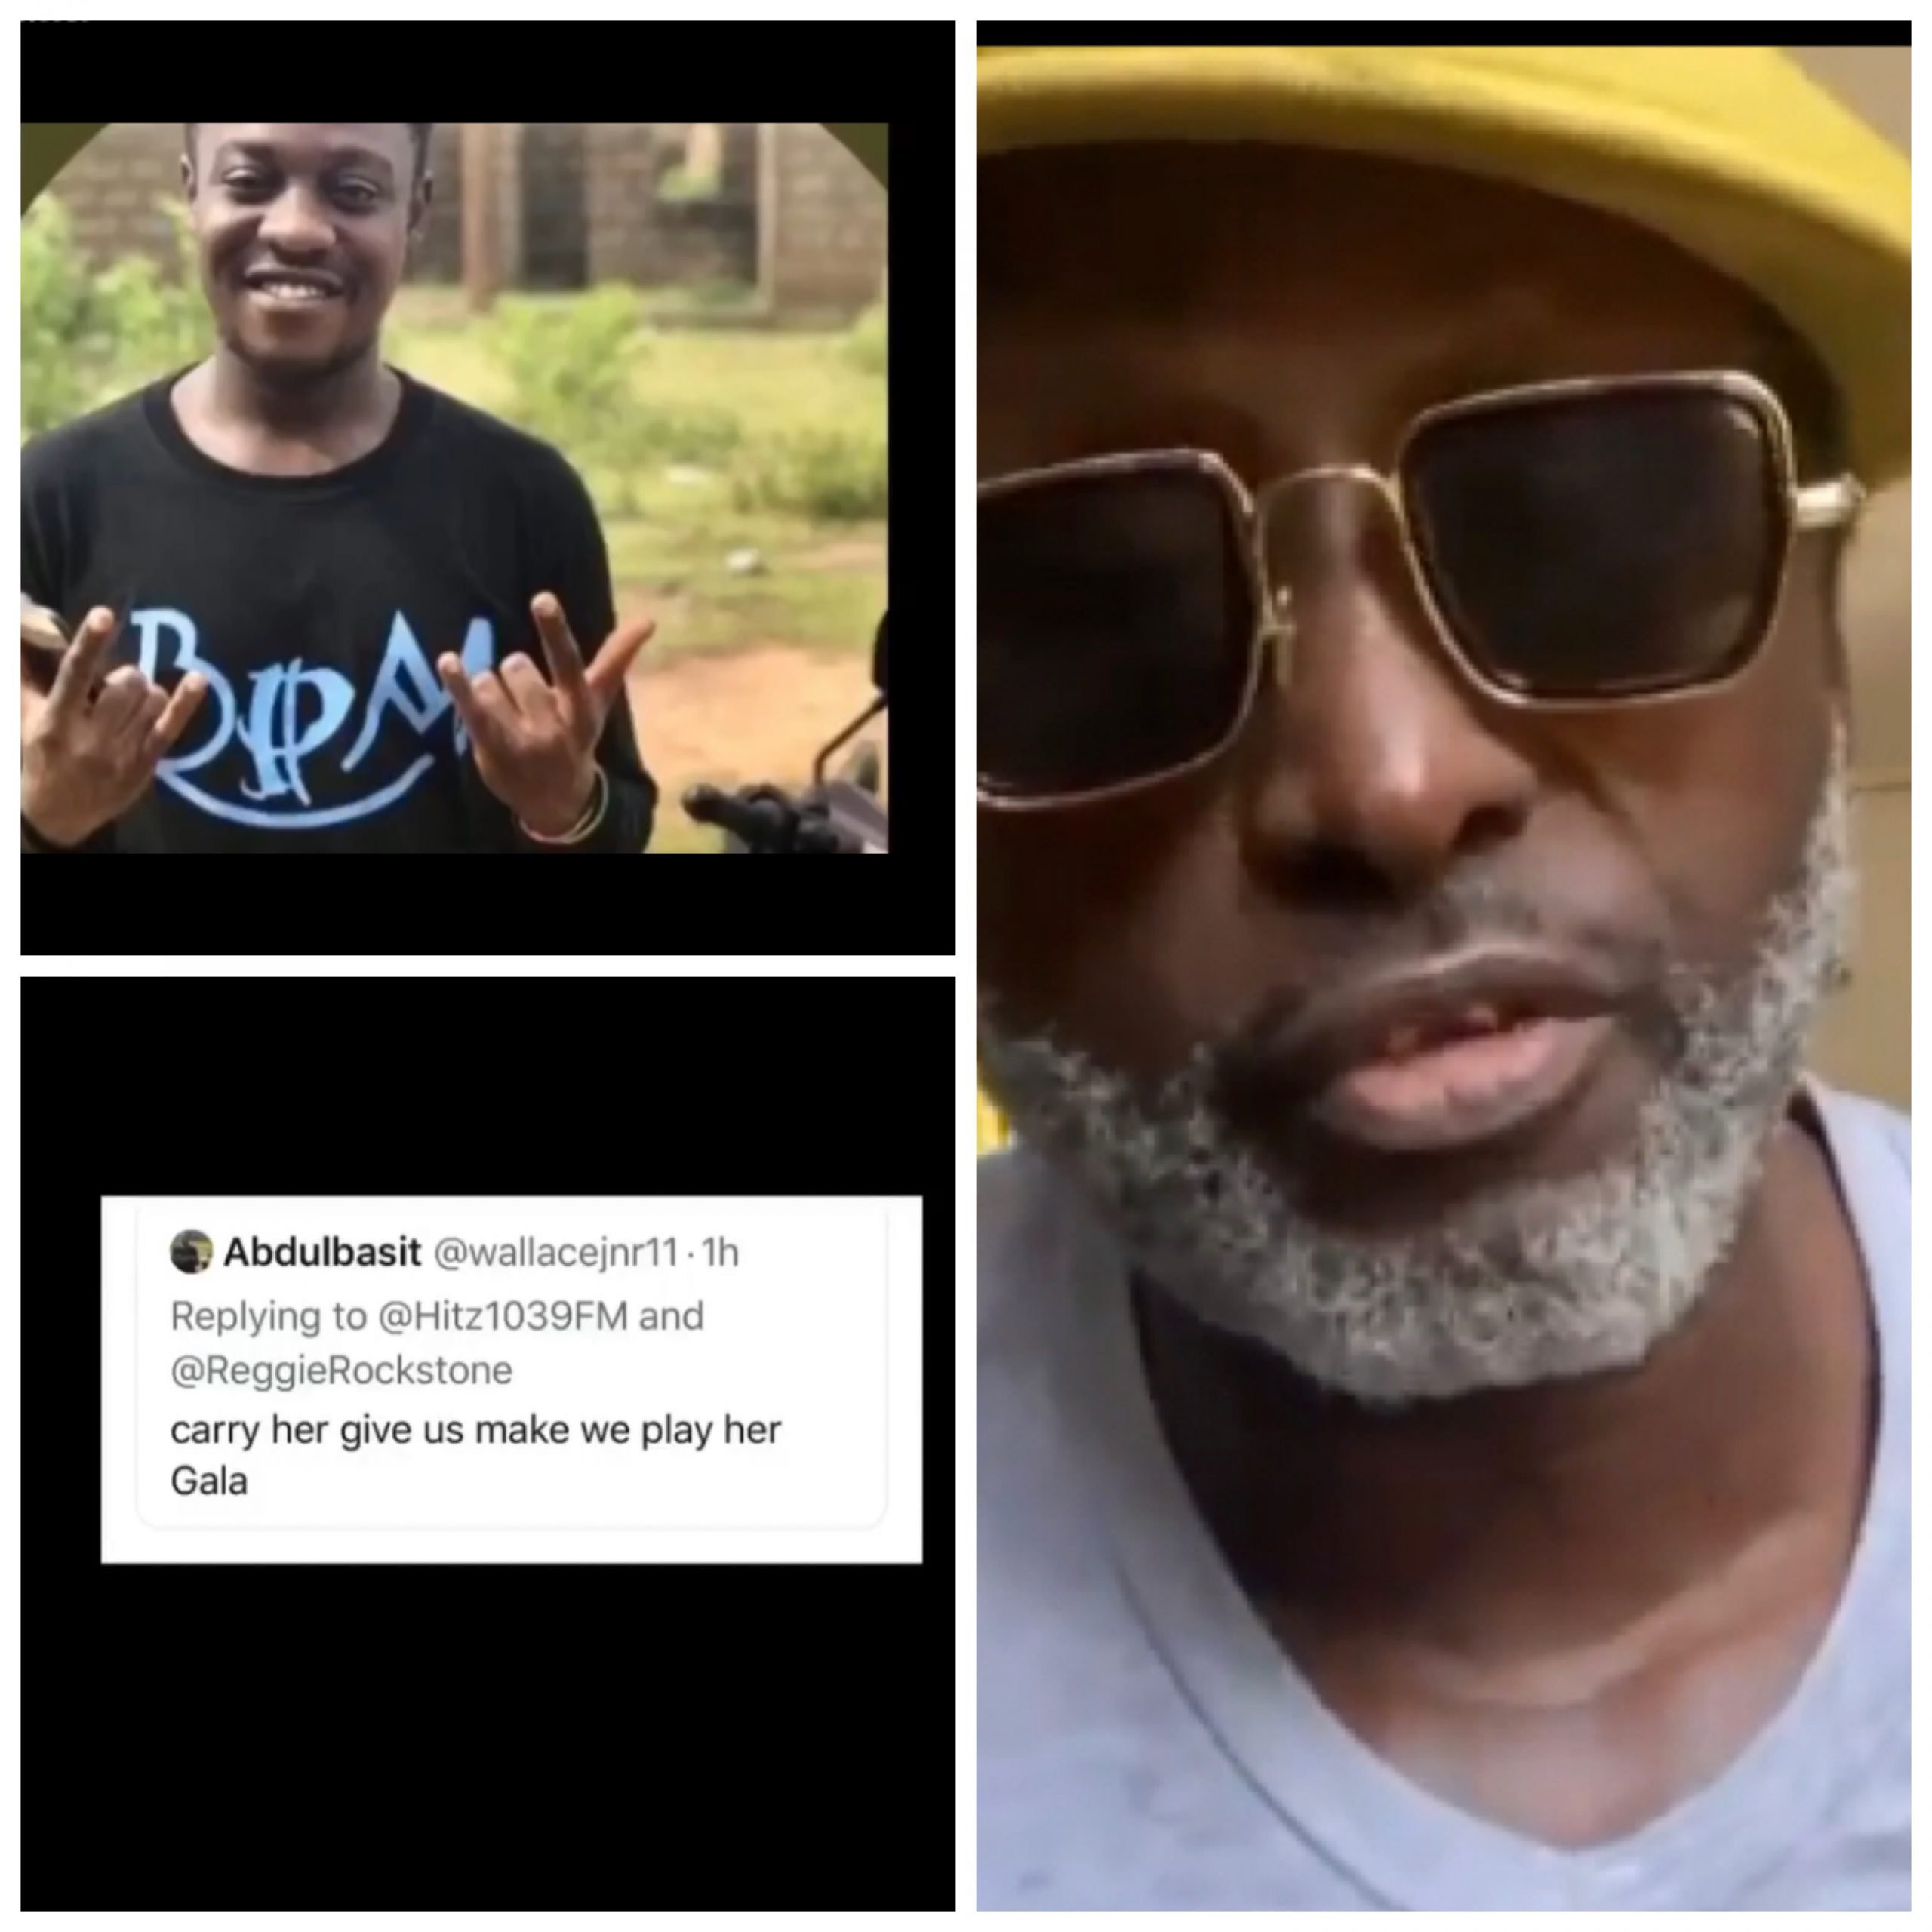 Watch: 'He's a pedophile'-Reggie Rockstone angrily calls out fan who threatened to gang rape his daughter